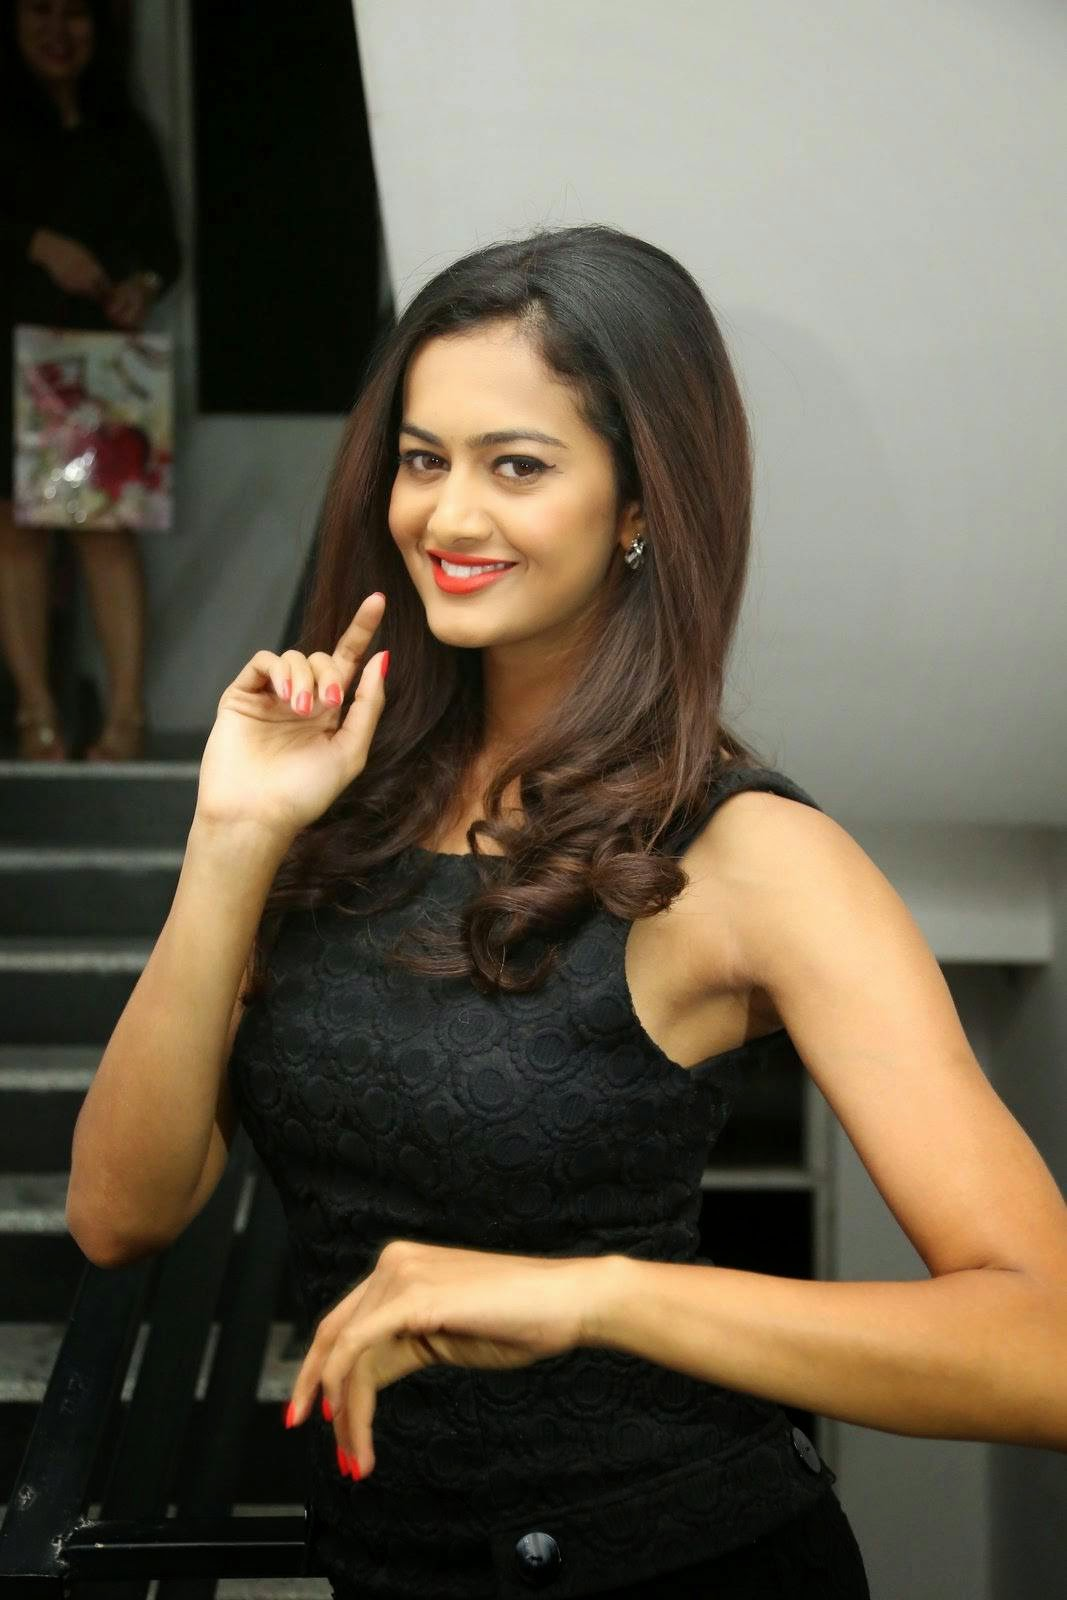 Actress Shubra Aiyappa Stills, Shubra Aiyappa Sexy Hot Figure images in Black Dress